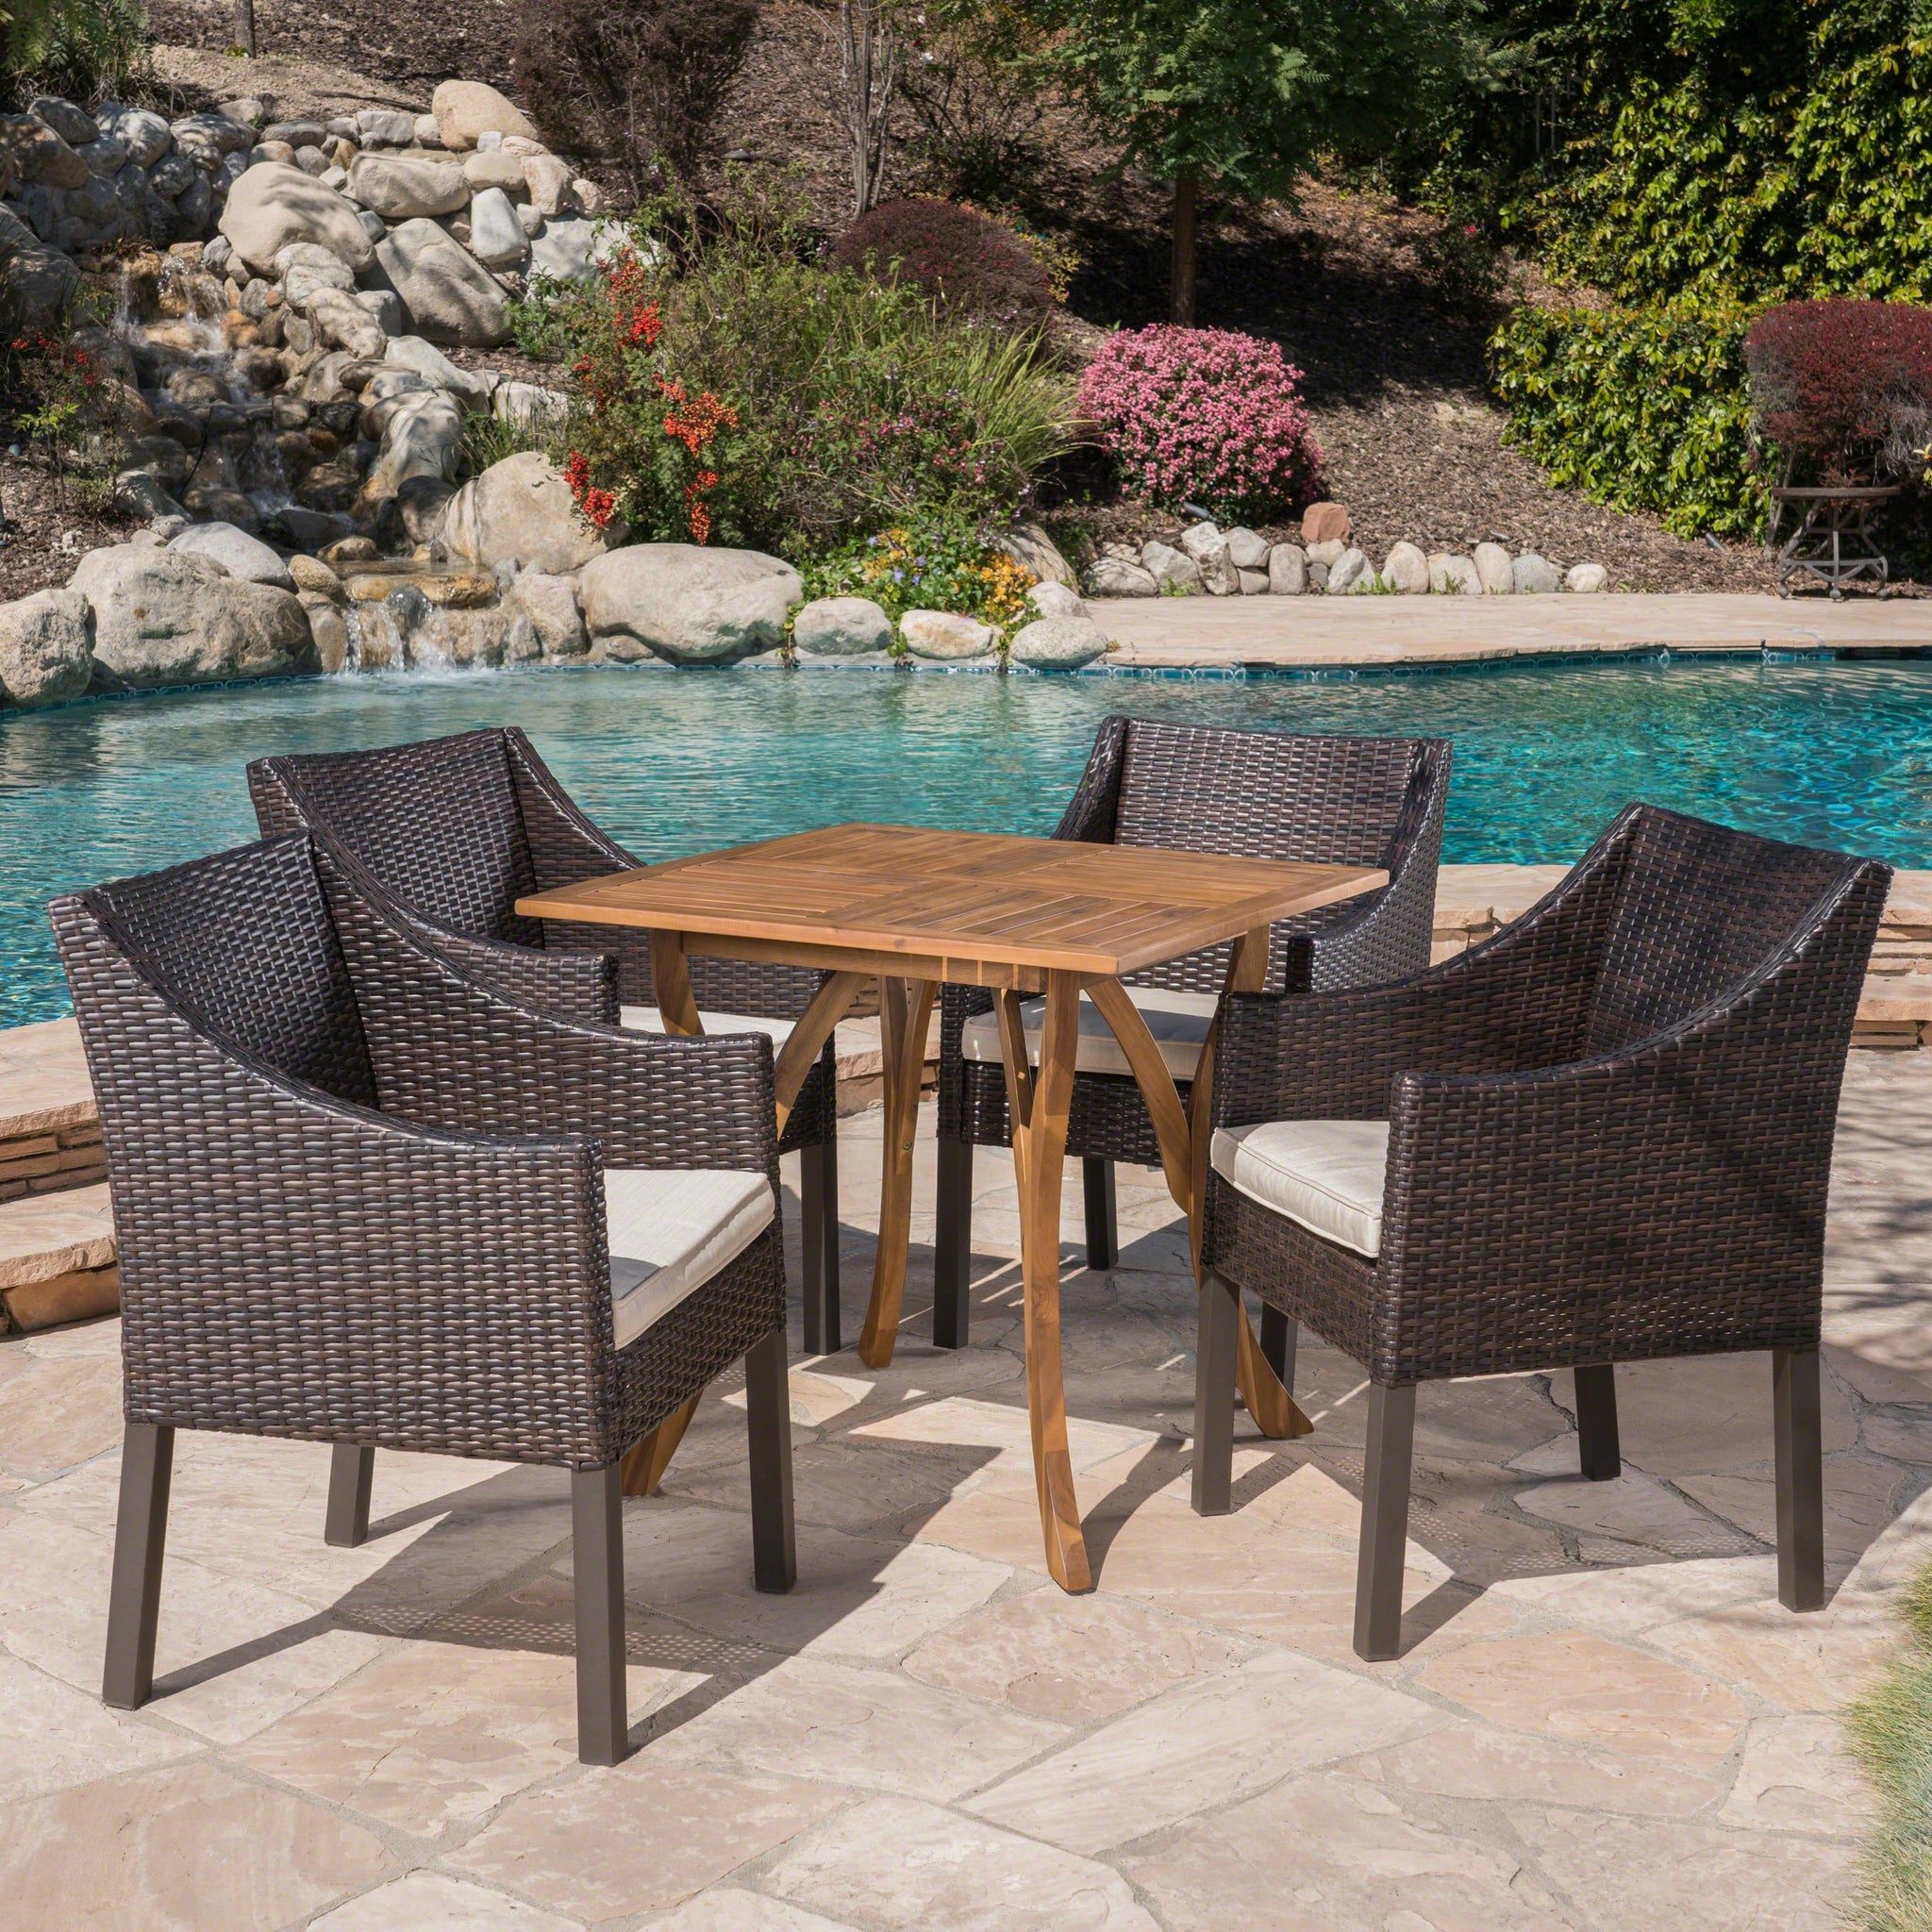 Paola Outdoor 5 Piece Acacia Wood/ Wicker Dining Set With Cushions